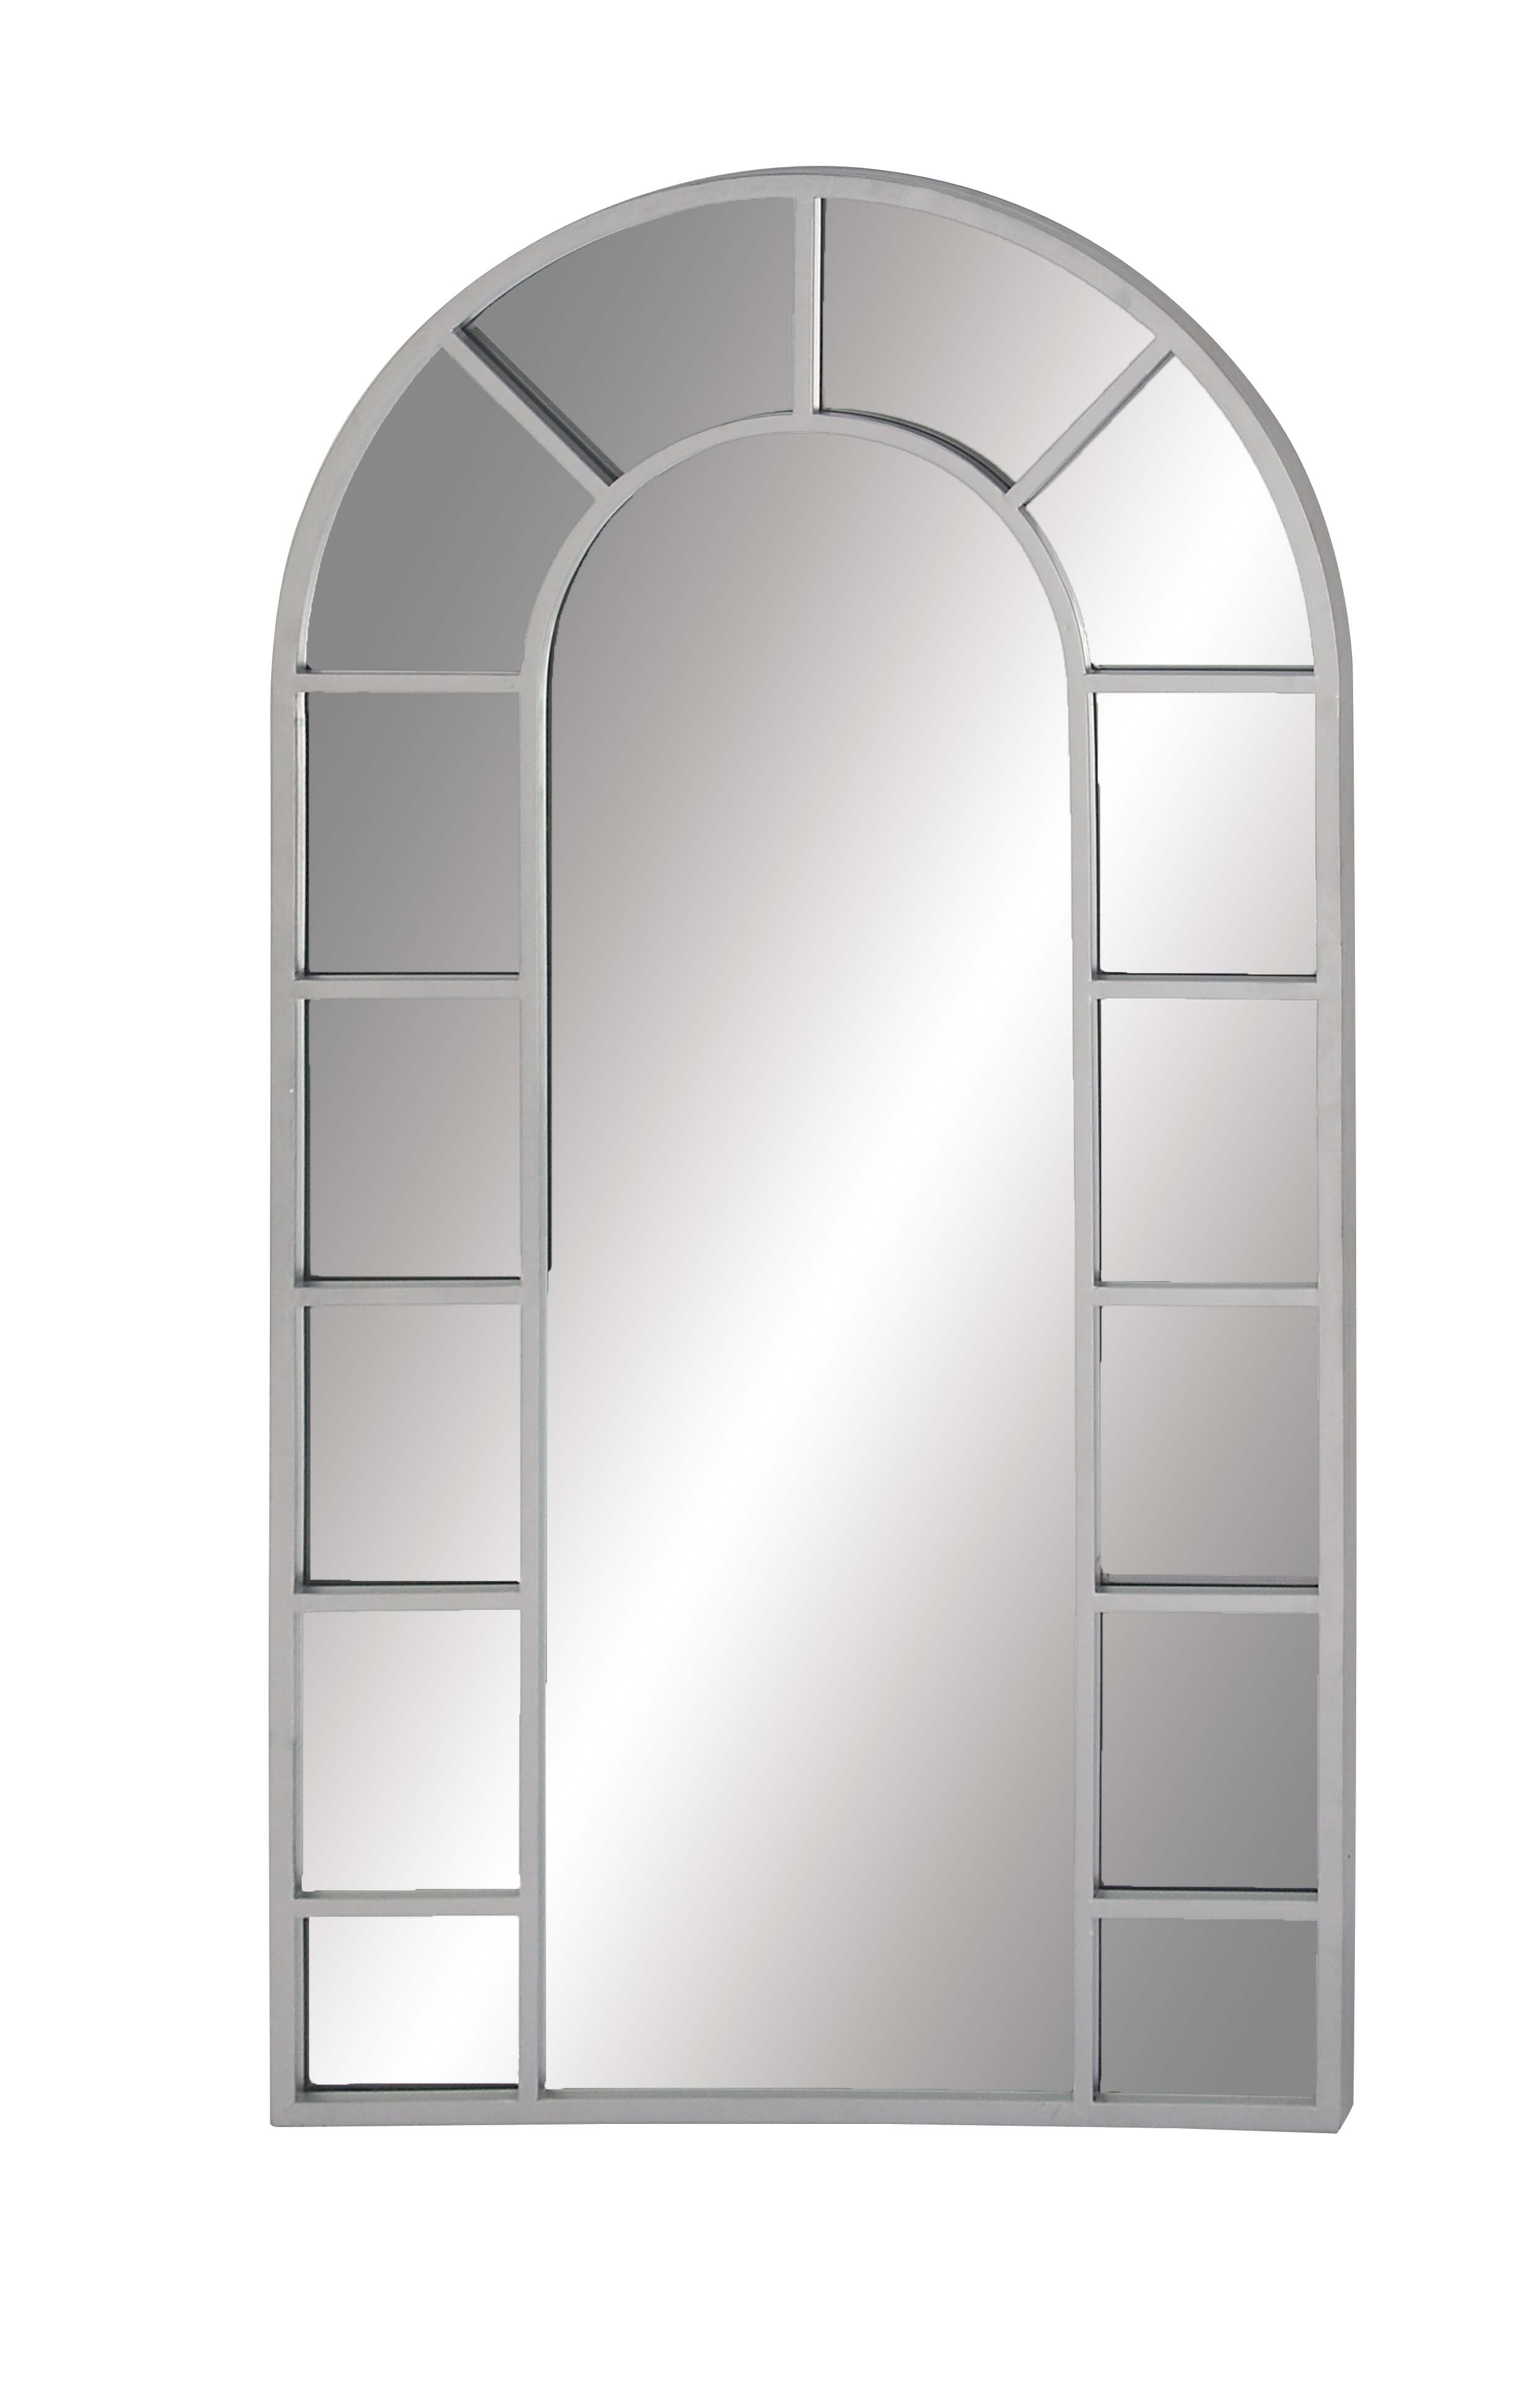 Decmode Contemporary Wood And Metal Arched White Wall Mirror, White Intended For Arch Vertical Wall Mirrors (Photo 13 of 30)